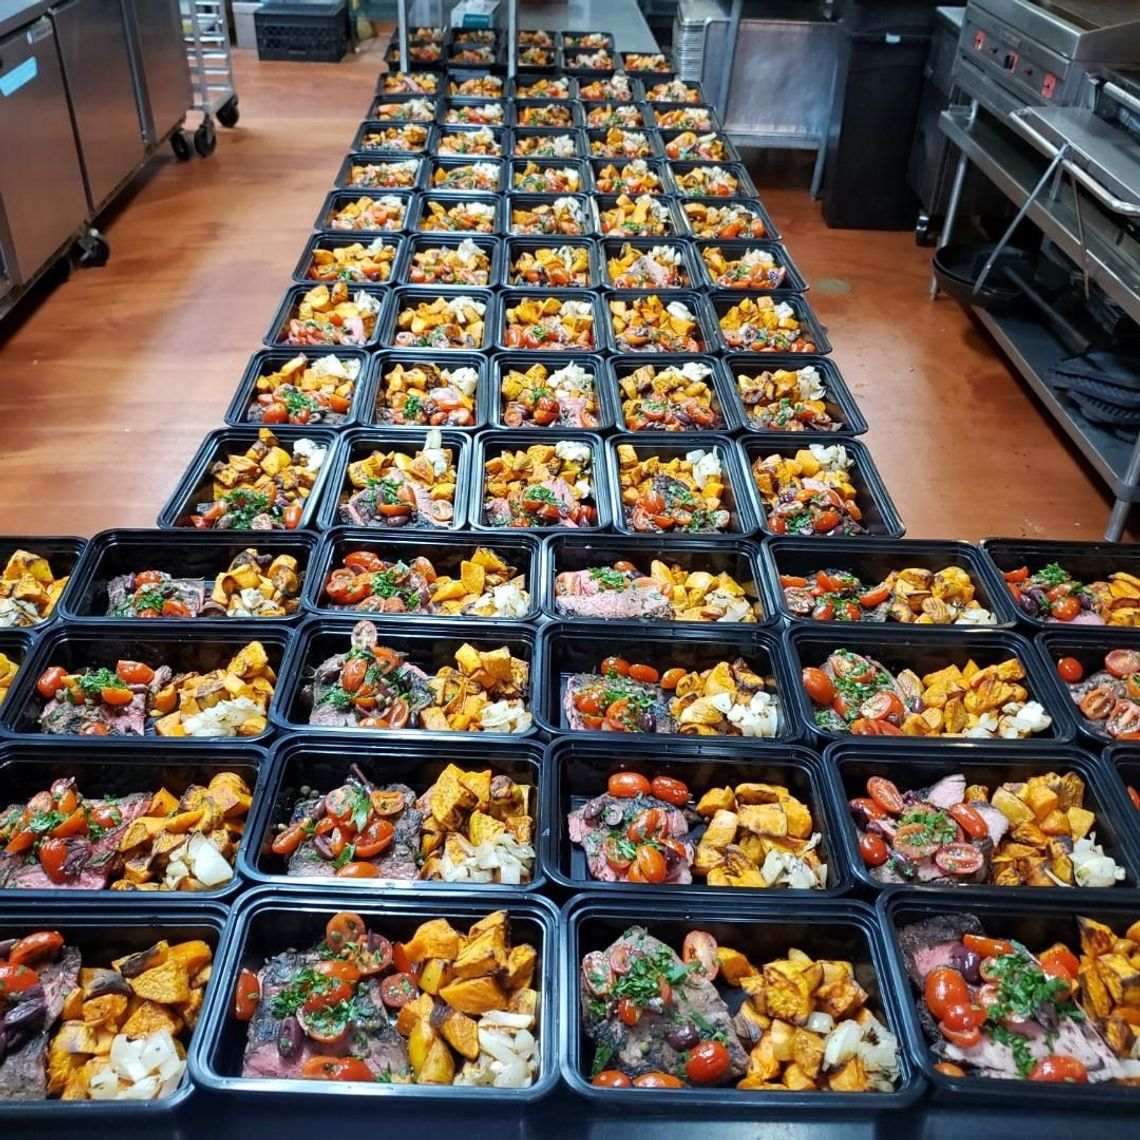 Staff at Deborah Miller Catering have transitioned their operation to preparing and delivering meals like these to hospital workers.